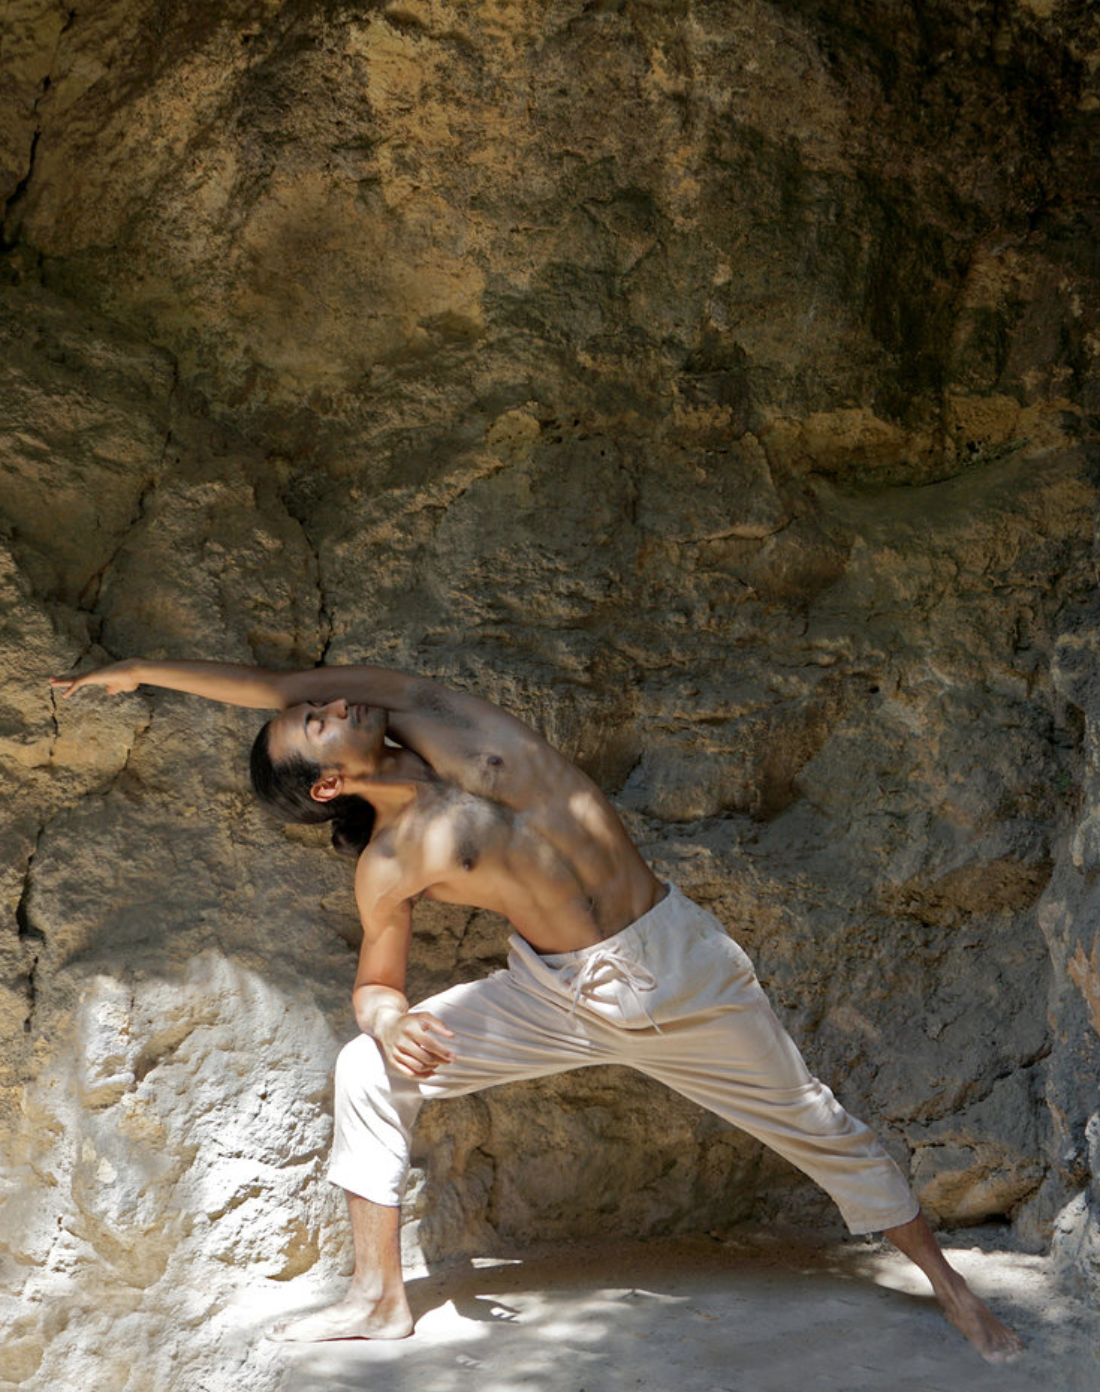 about the instructor: - Raphael is a Yoga Teacher (Nithya Priyan School of Yoga) and Parkour Coach (MOVE Academy Singapore). He specialises in guiding others towards achieving a state of Flow through mindfulness and moving meditation by drawing on the serenity of Yoga and the vigour of Parkour.